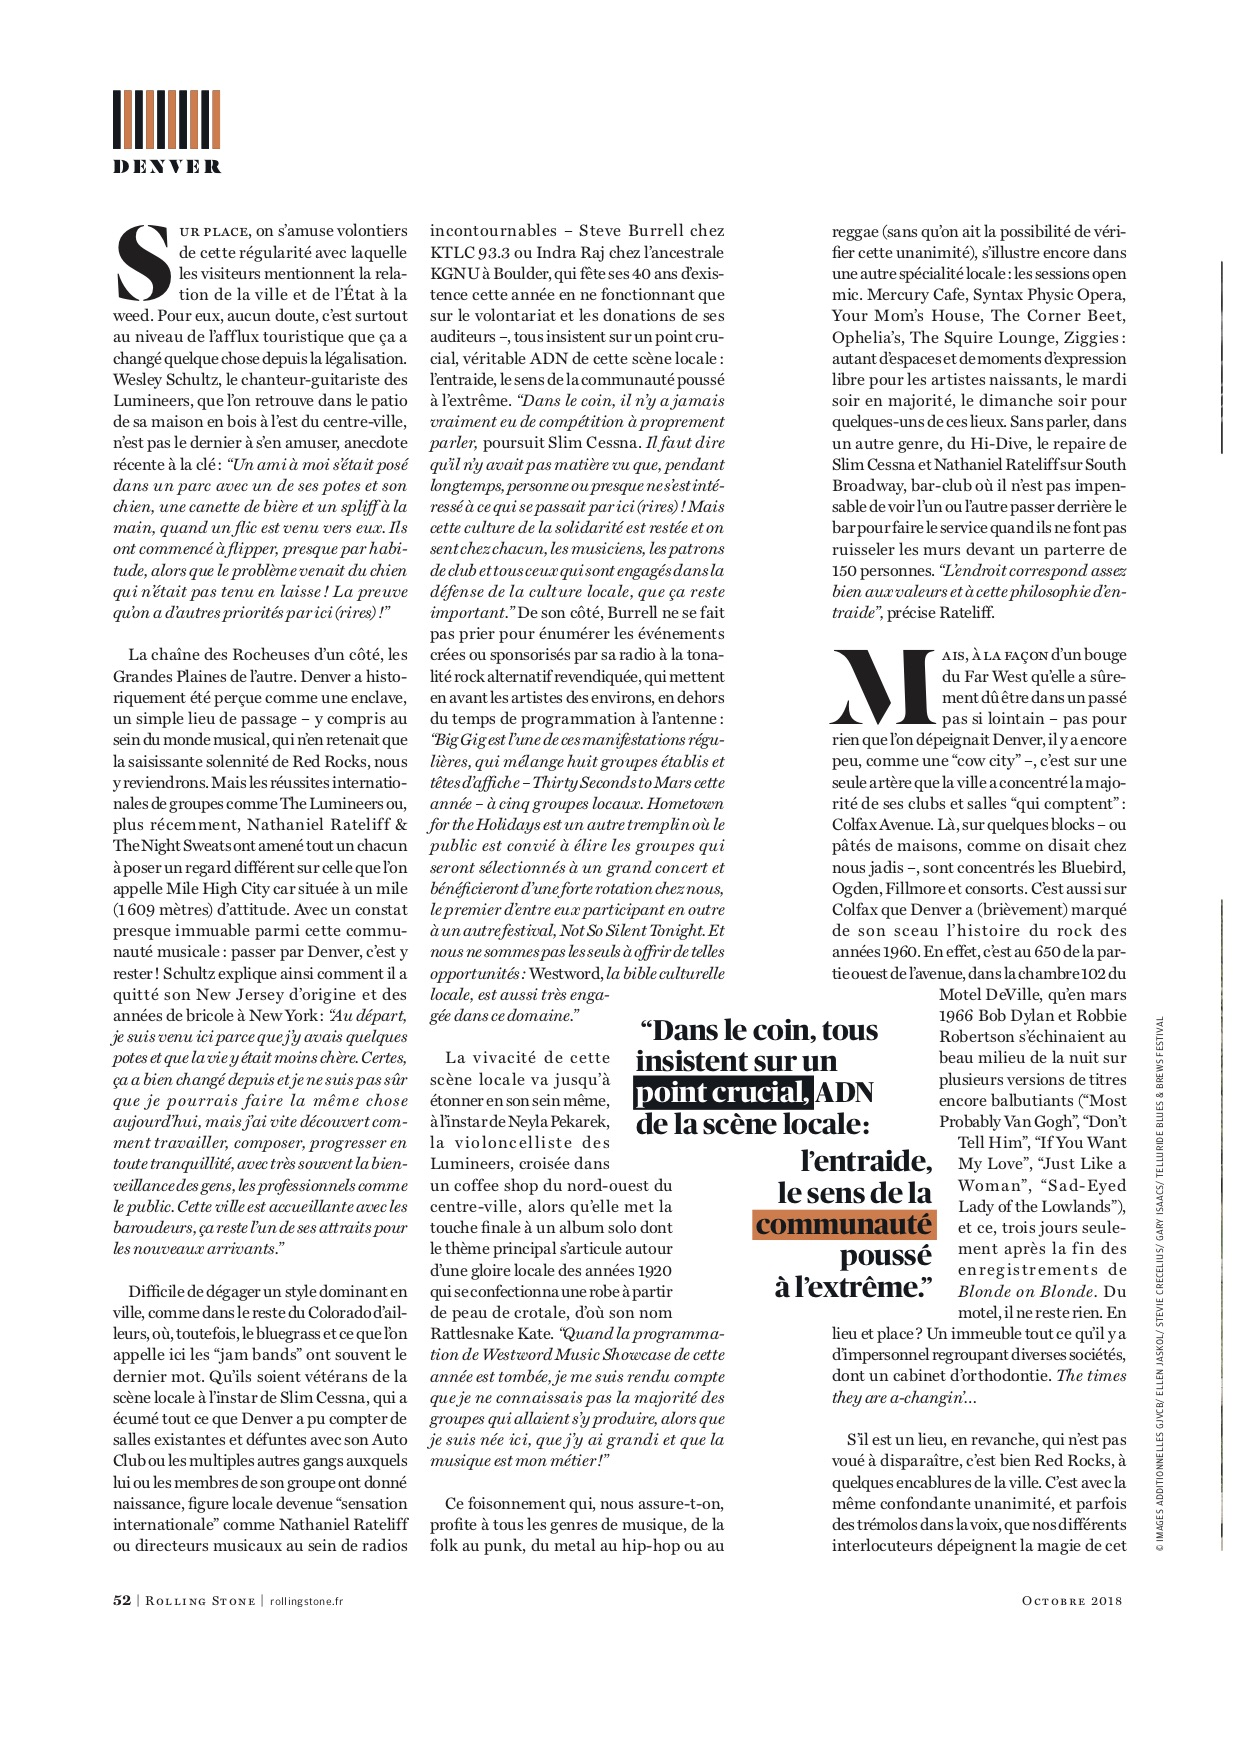 French Rolling Stone Oct 20184.jpg